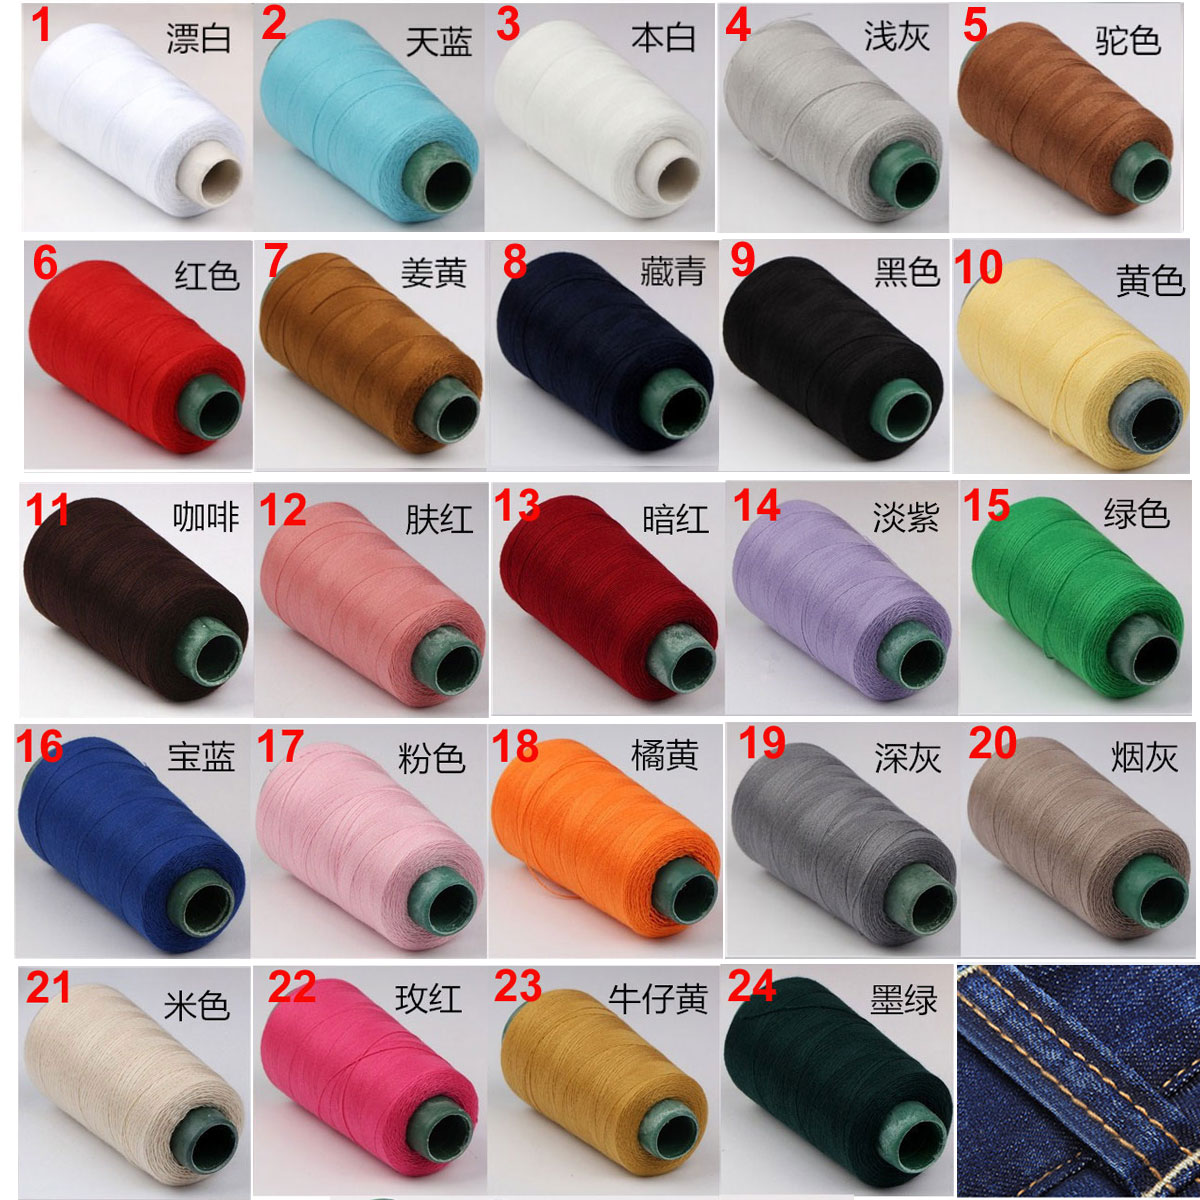 20s/3 1300 Yards Jeans Overlocking Sewing Machine Polyester Thick Thread Sewing Supplies 24 Colors